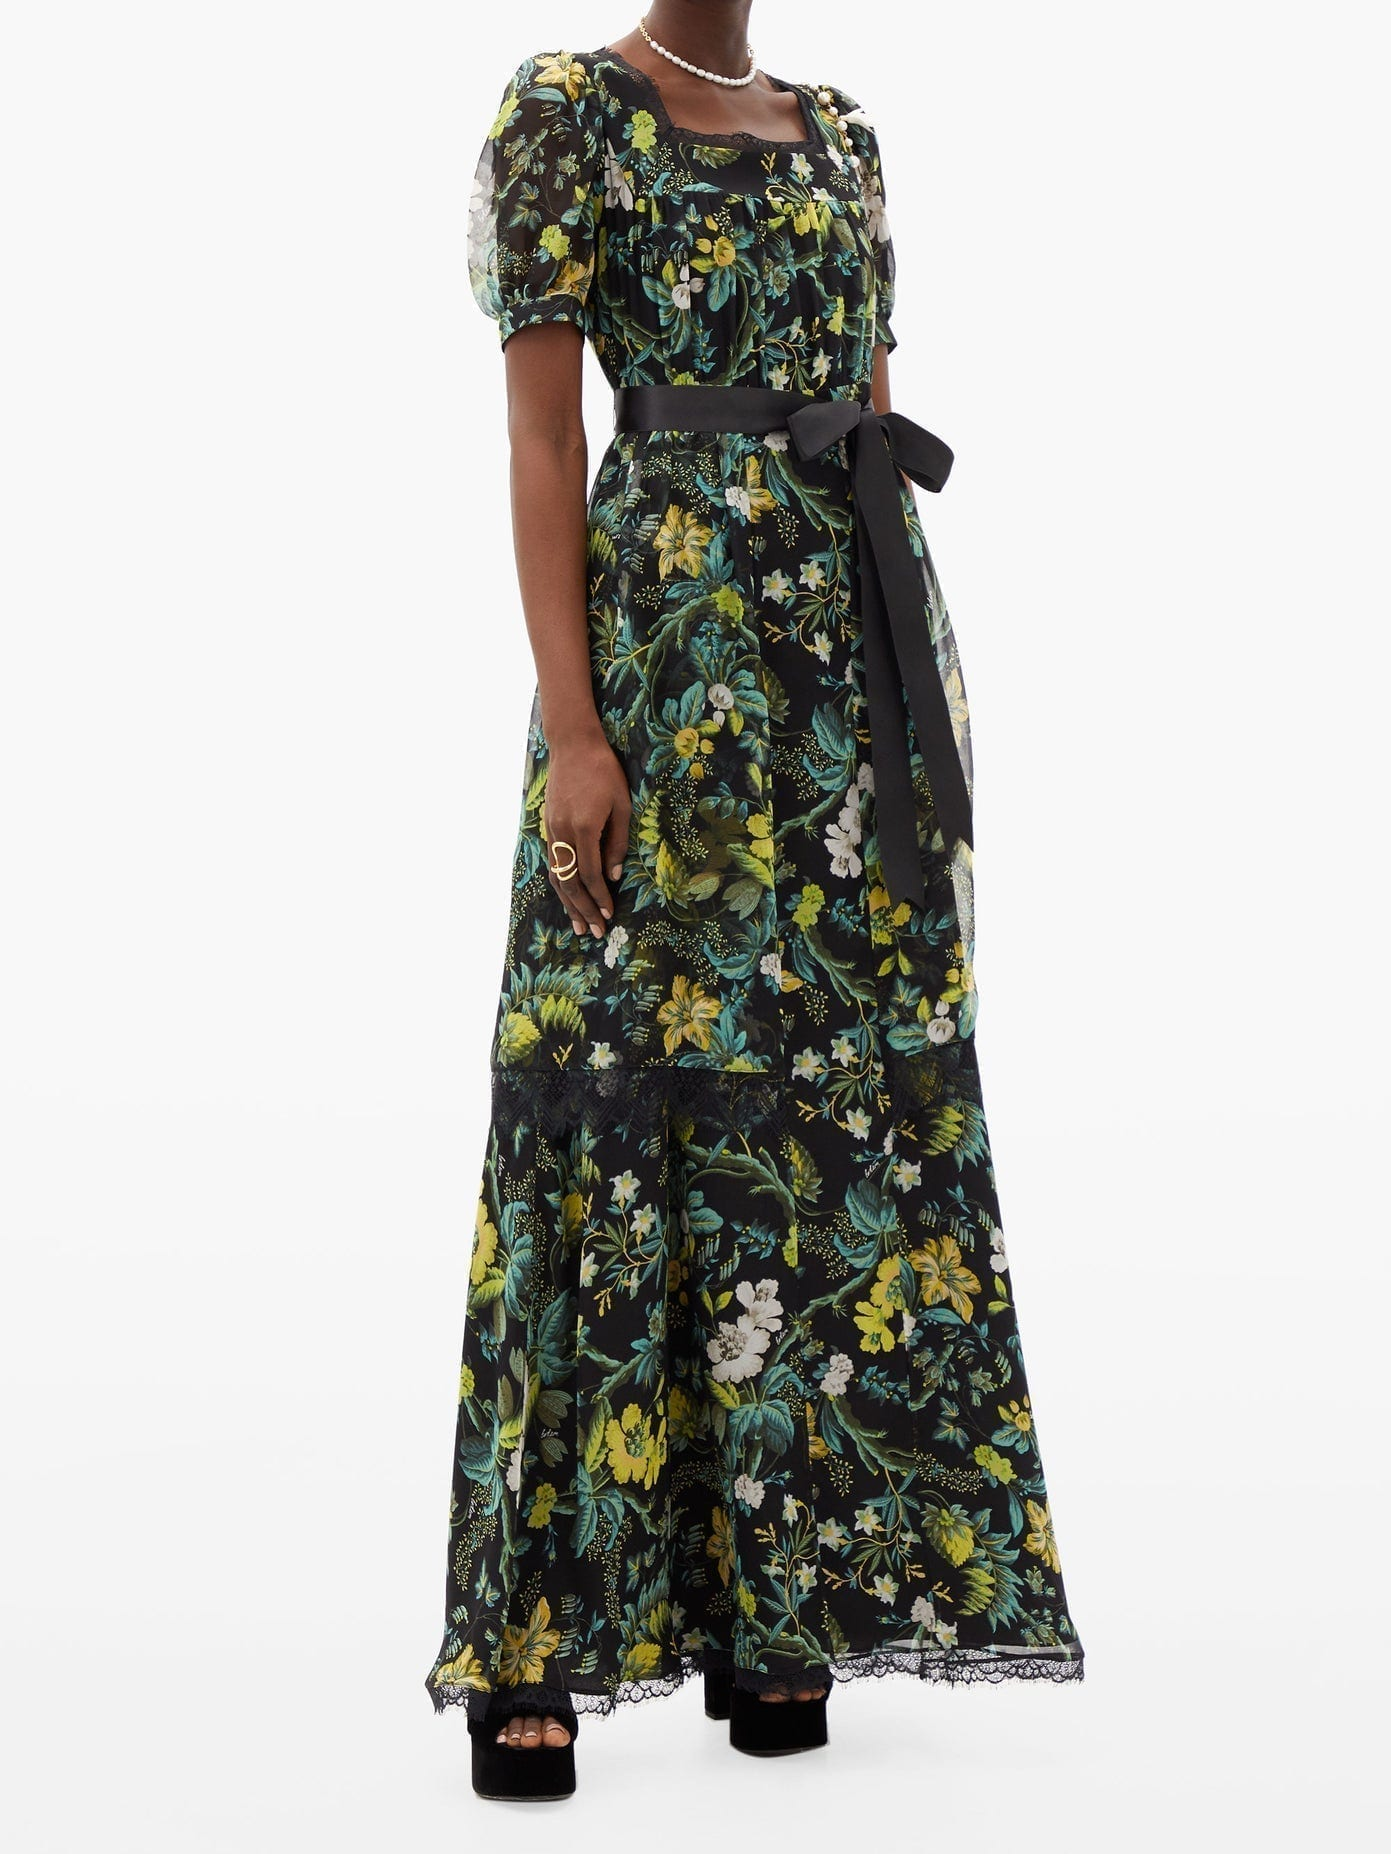 ERDEM Florencia Floral-print Lace-trimmed Silk Gown